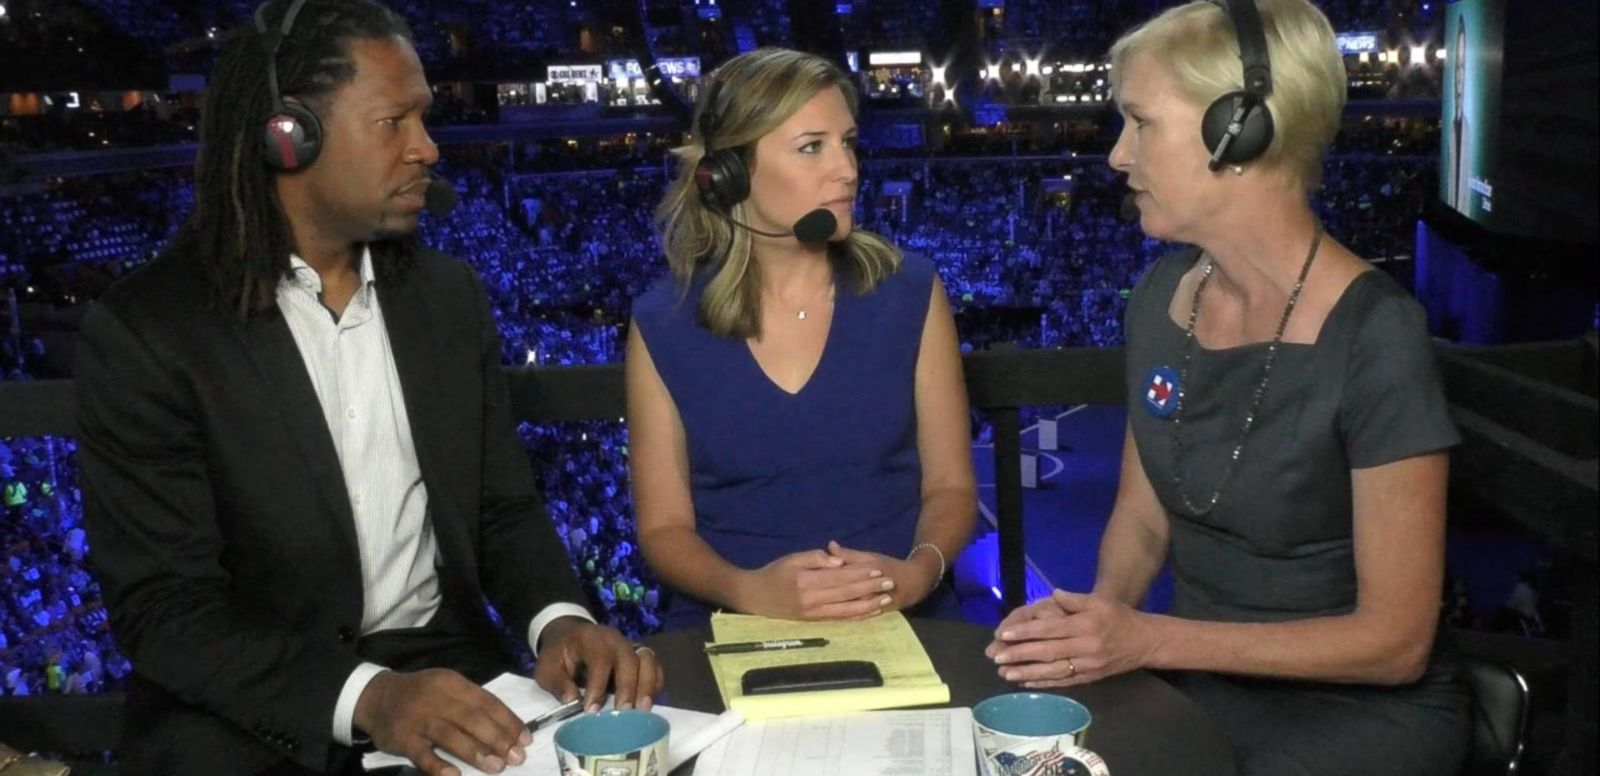 VIDEO: Cecile Richards on Planned Parenthood, Women's Rights and Clinton